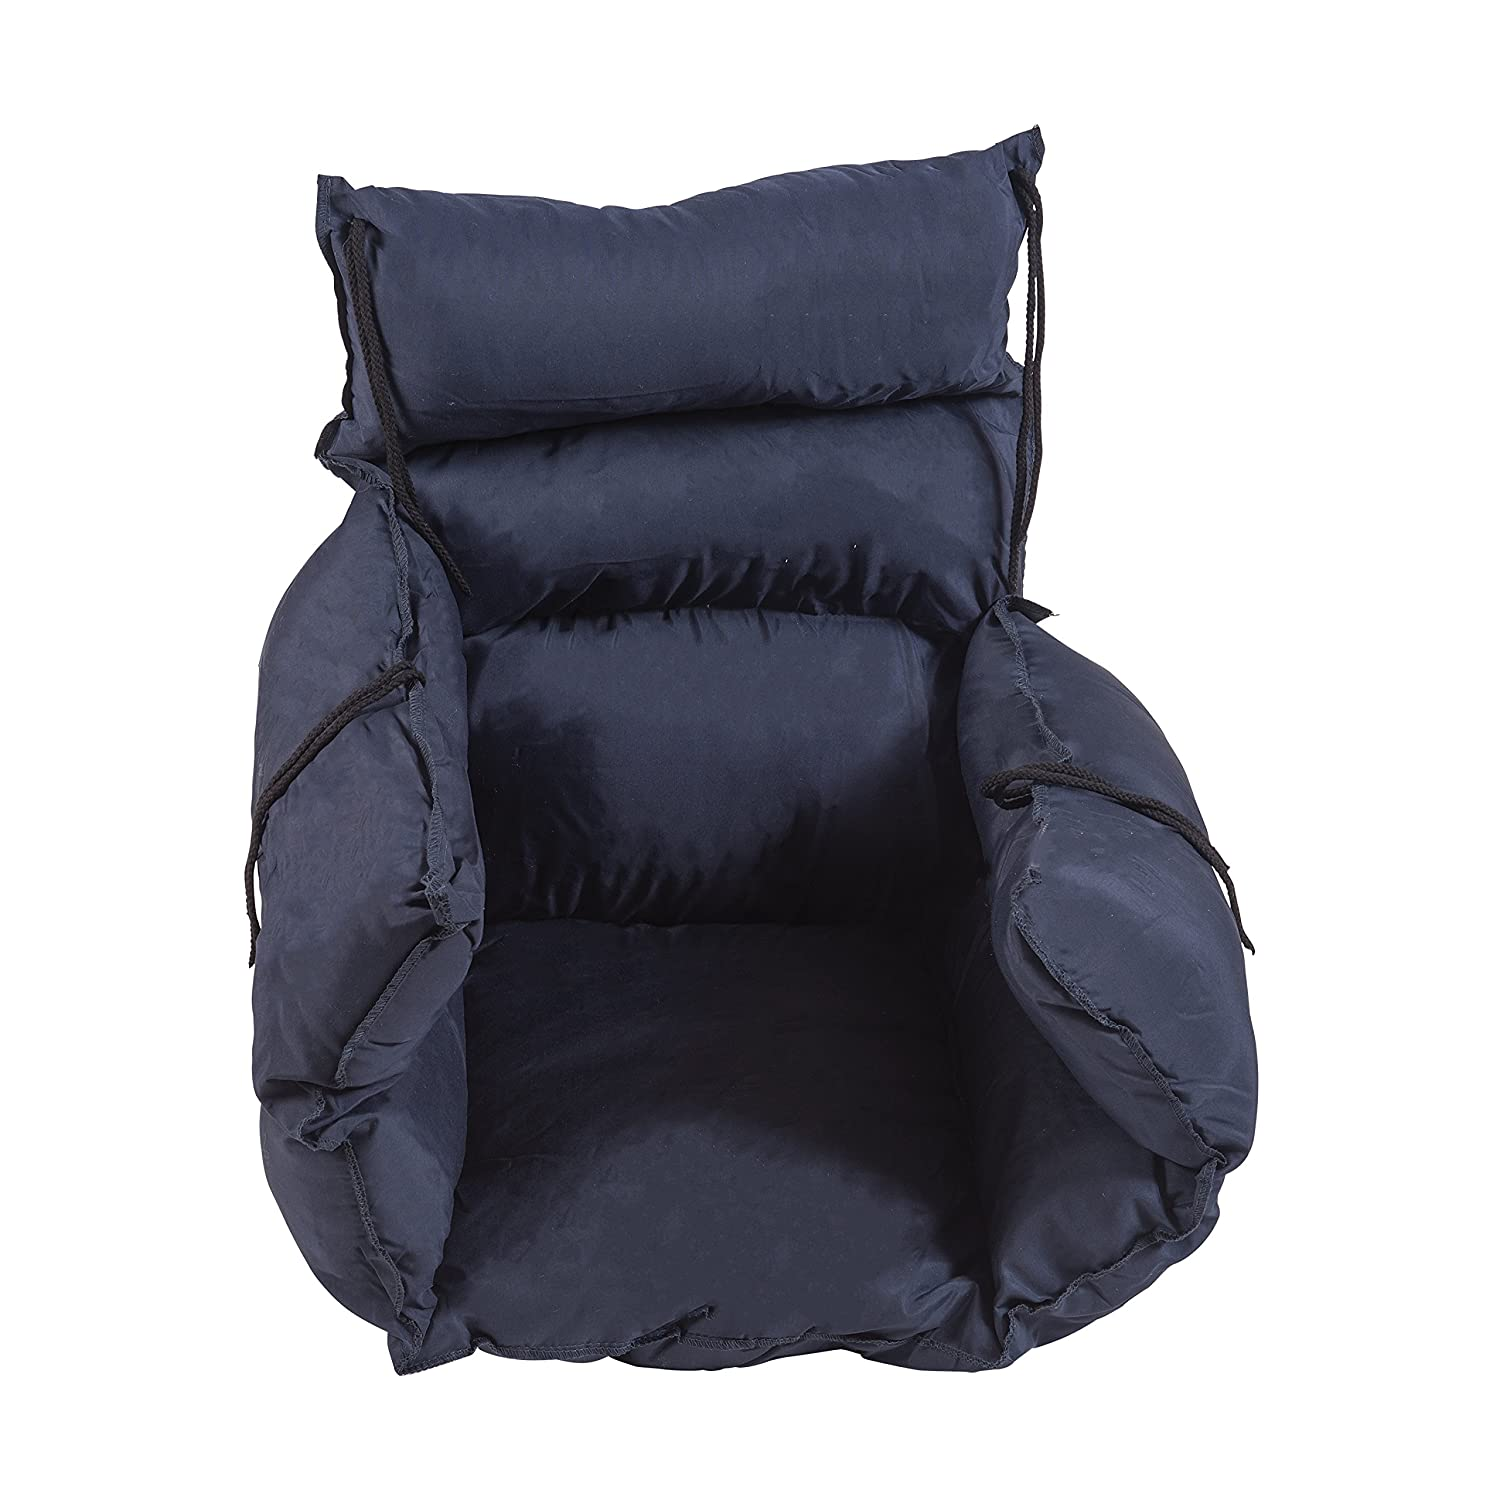 Dmi comfort chair cushion pillow for your chair recliner for Chair pillow